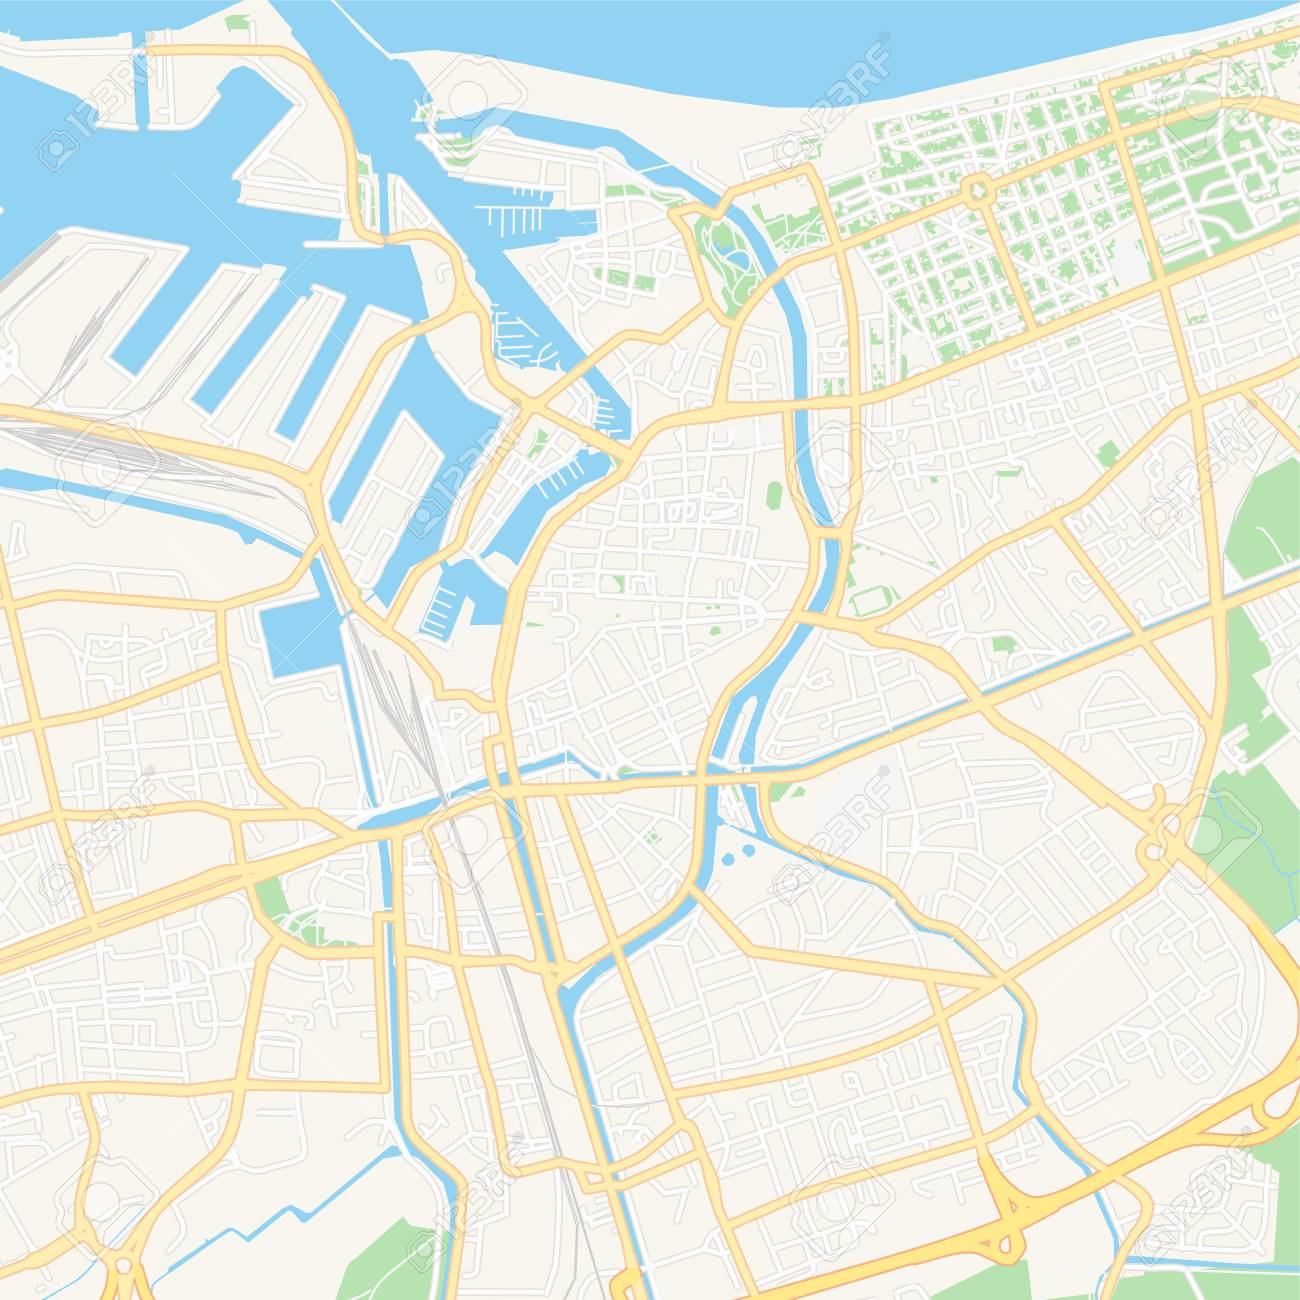 Map Of France Dunkirk.Printable Map Of Dunkirk France With Main And Secondary Roads